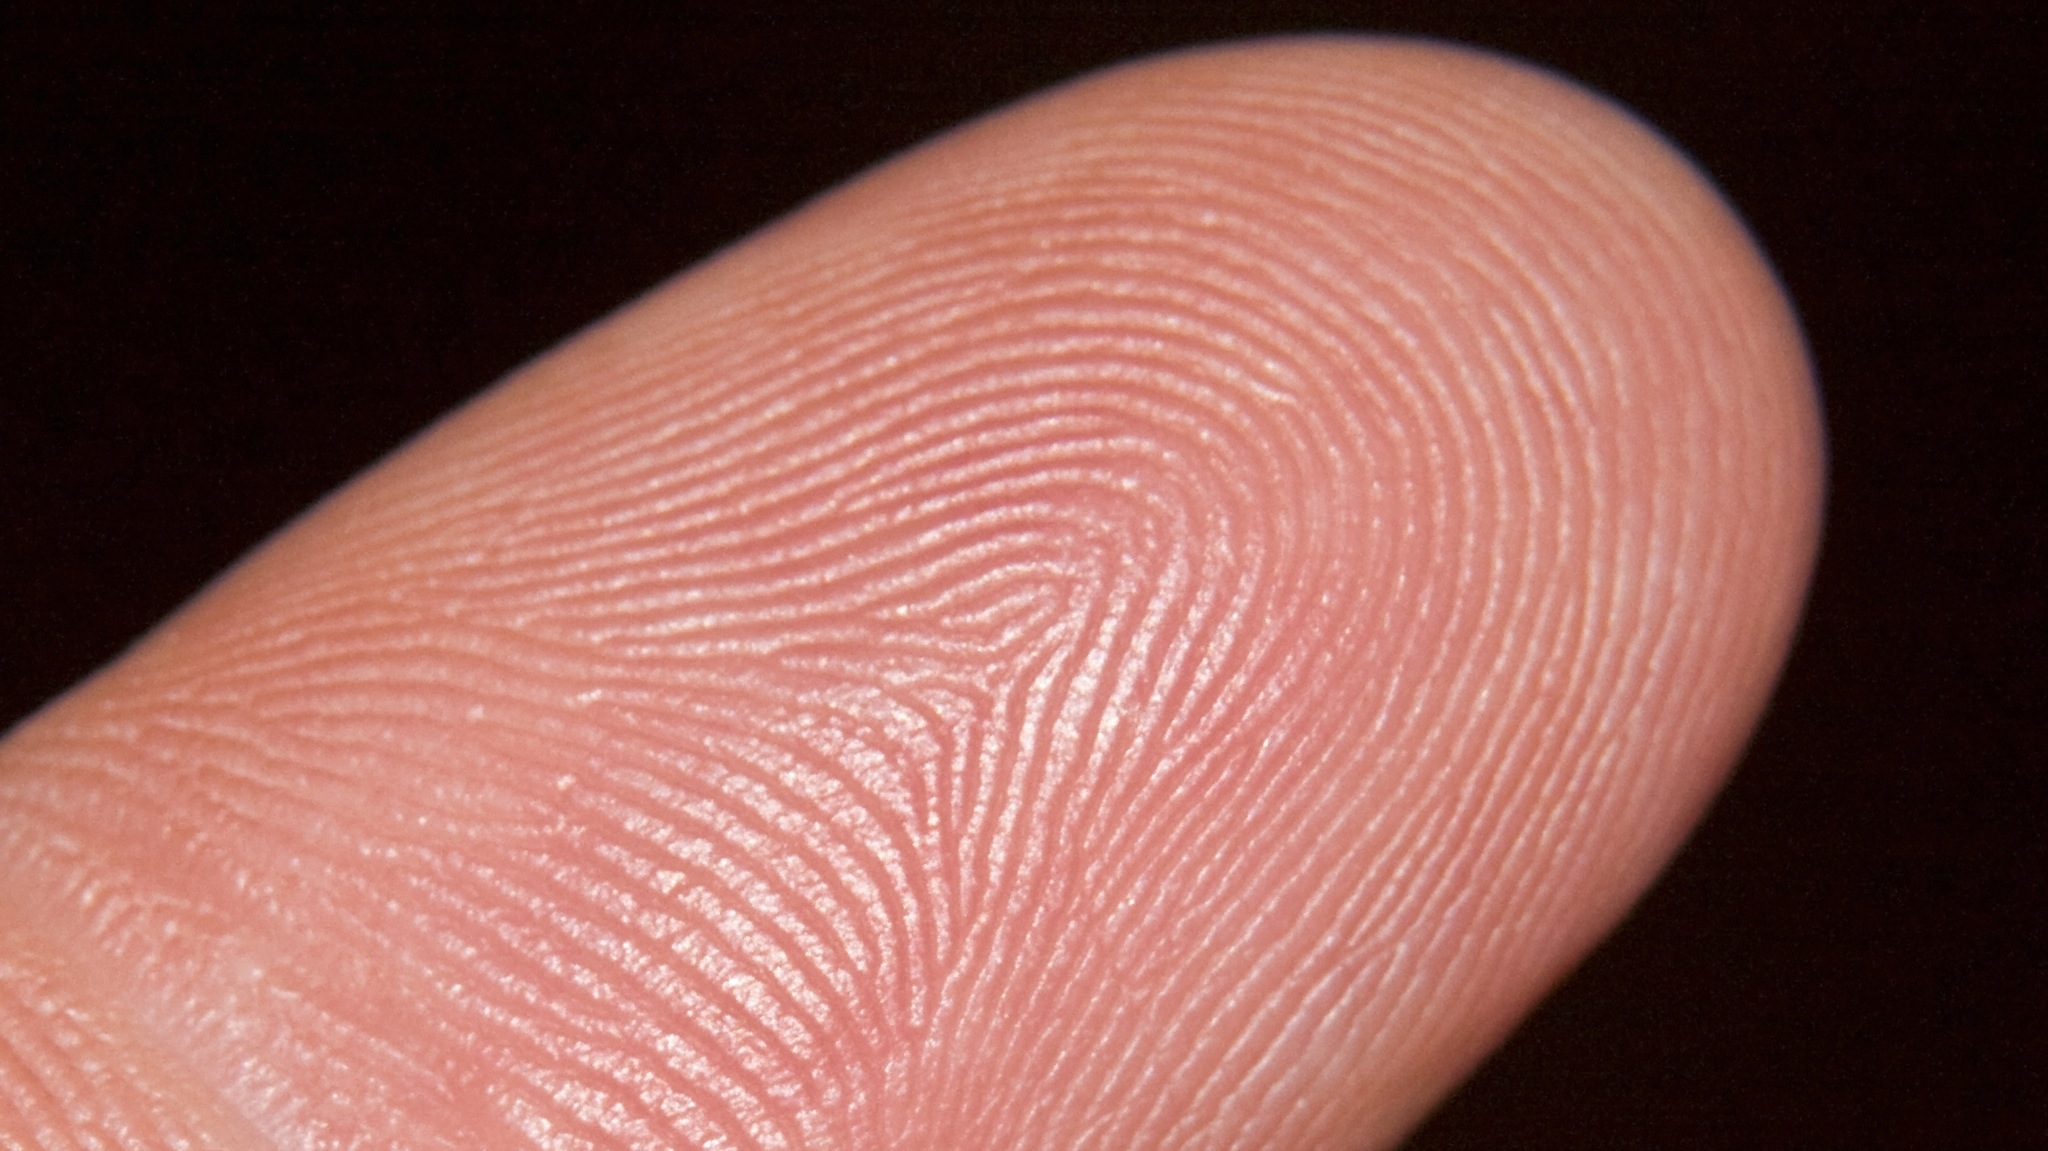 New IPhone May Have Fingerprint Authentication—Could It Be